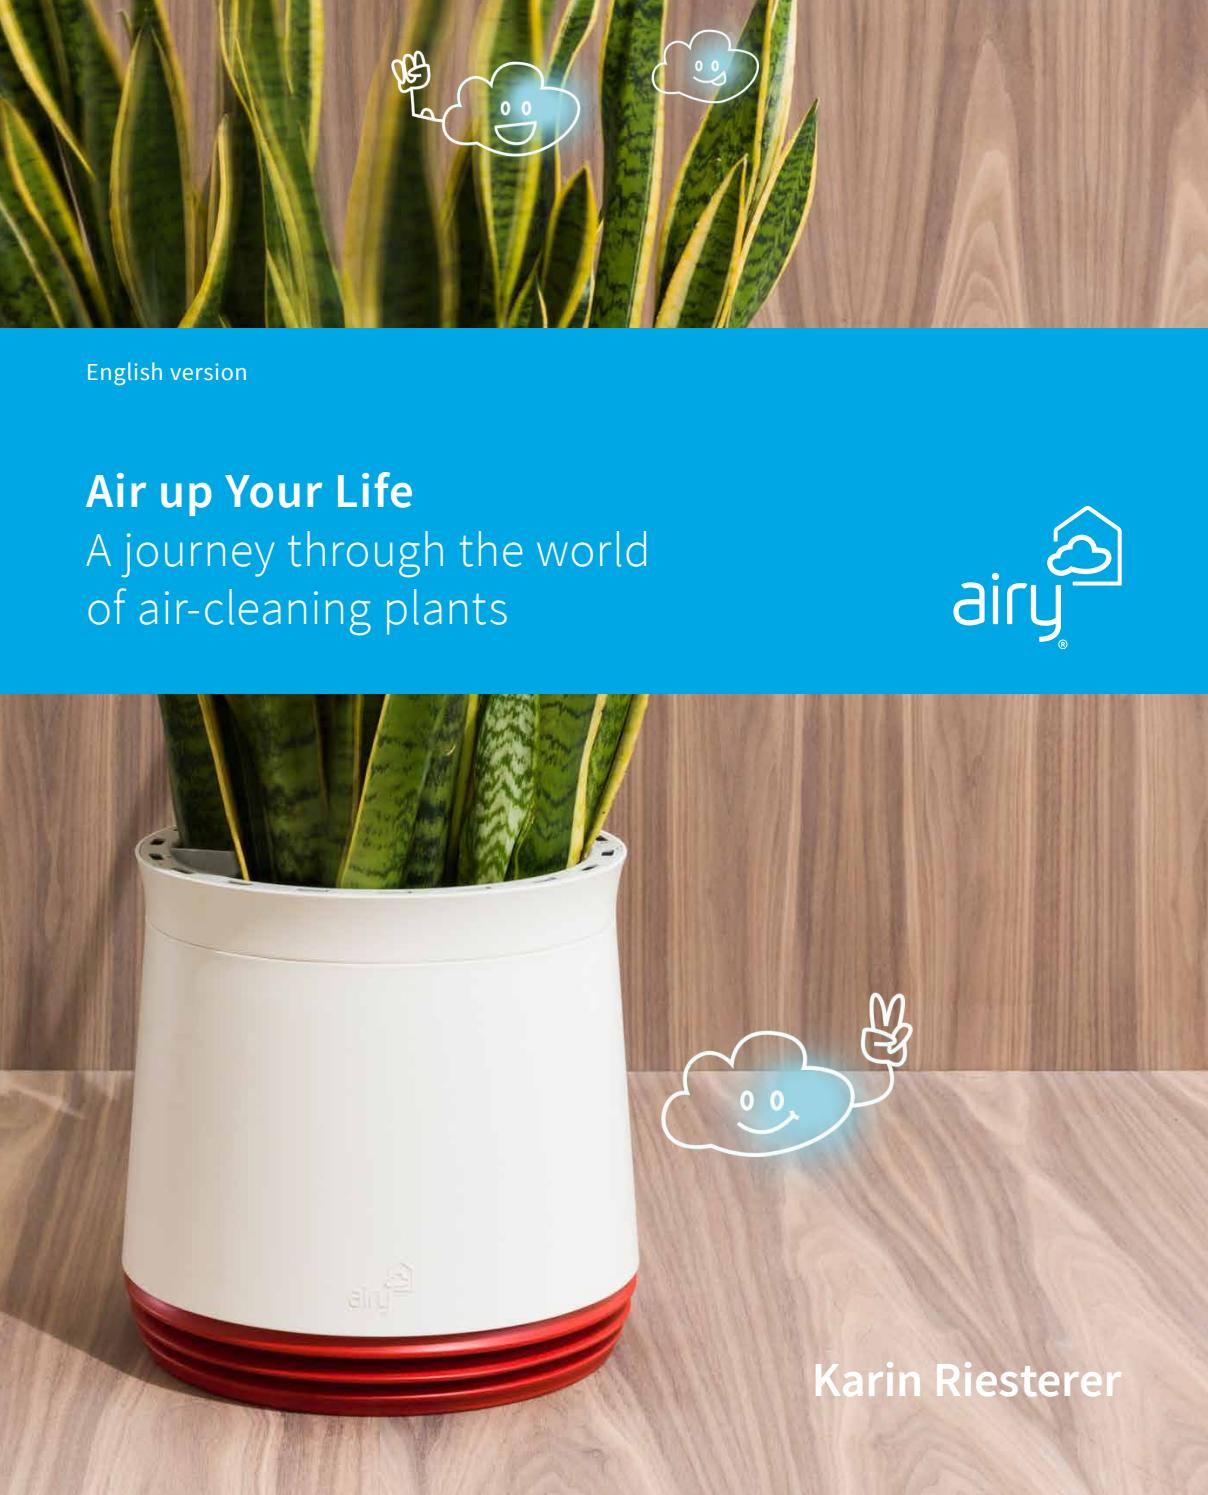 Chrysalidocarpus Space For Life Air Up Your Life English Version By Airy Greentech Gmbh Issuu